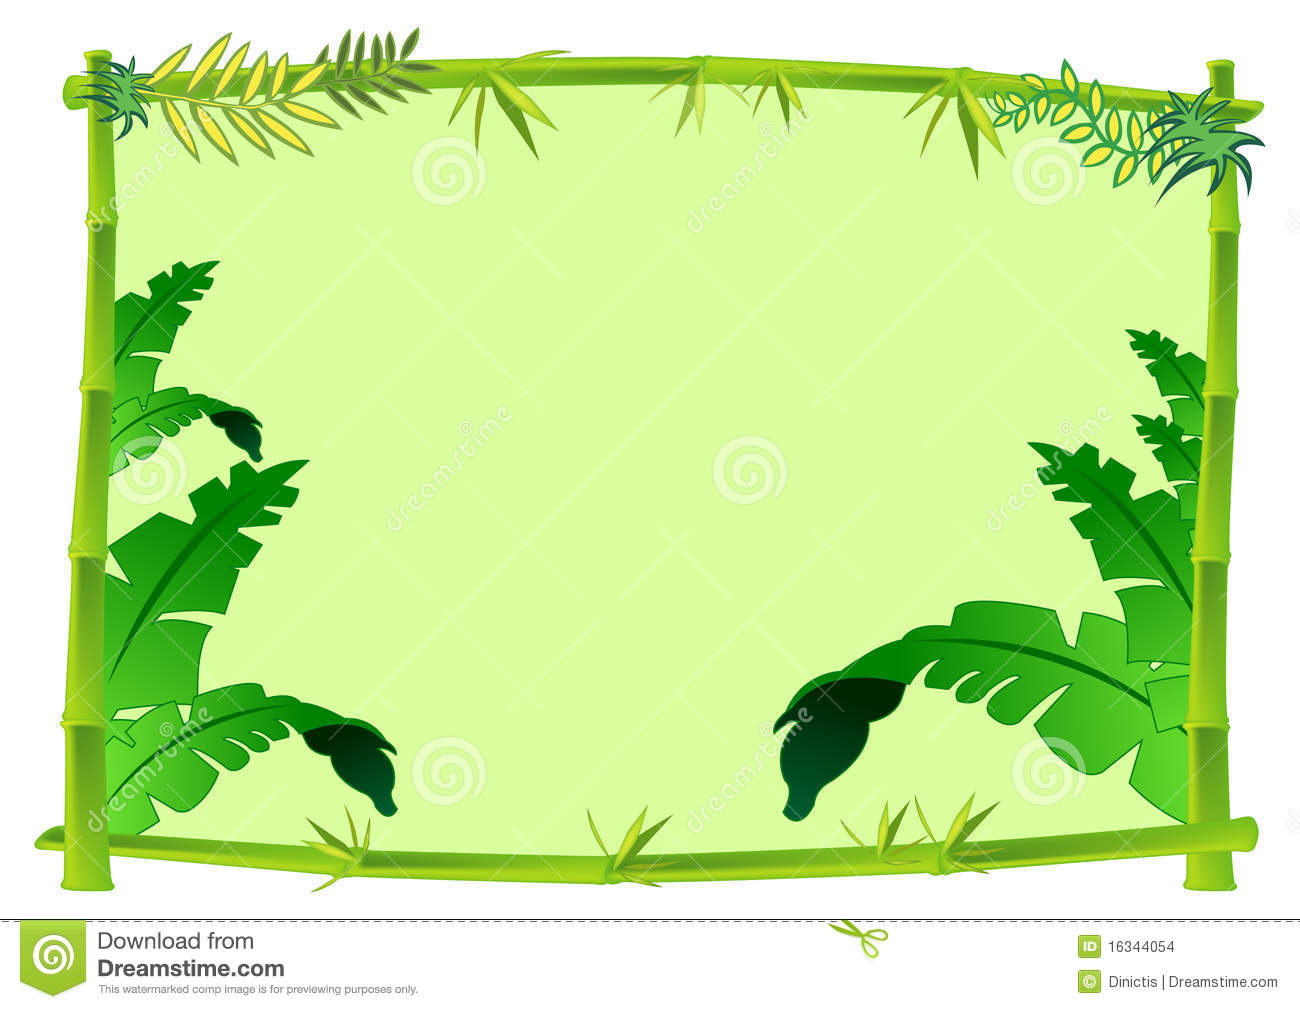 Jungle Clip Art Free Clipart Panda Free Clipart Images regarding free clip art jungle intended for your inspiration